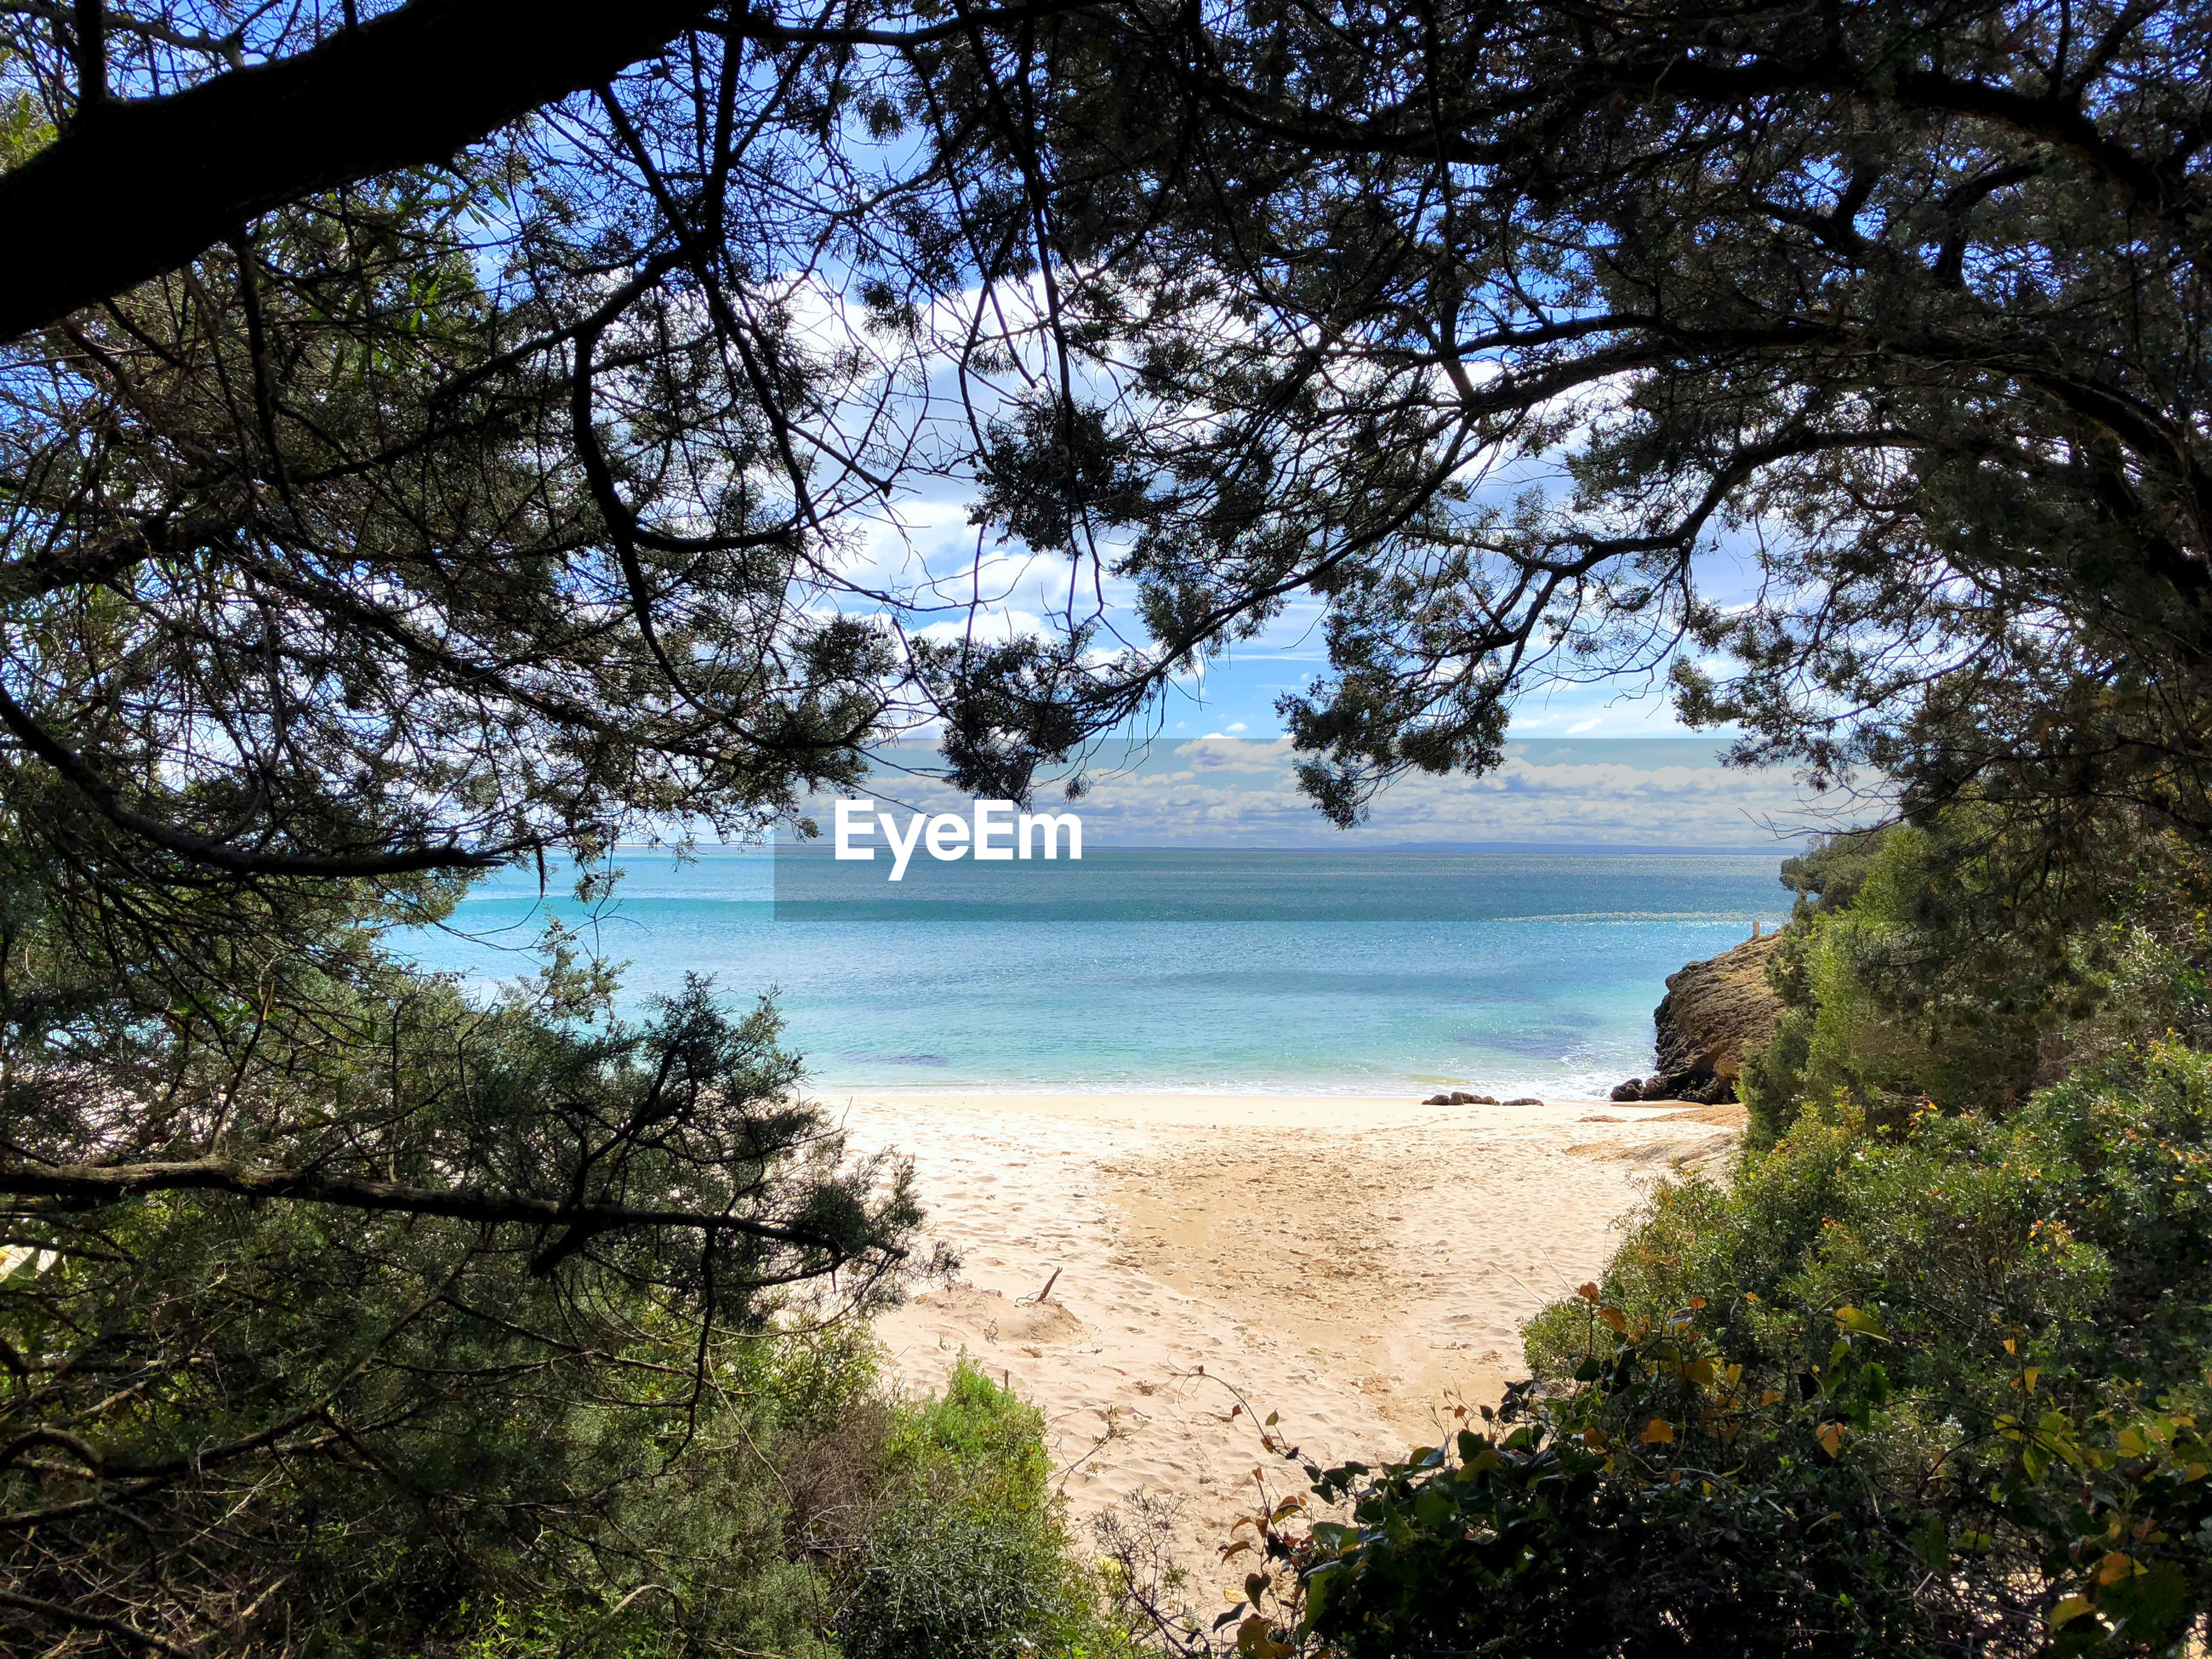 SCENIC VIEW OF SEA AGAINST TREES